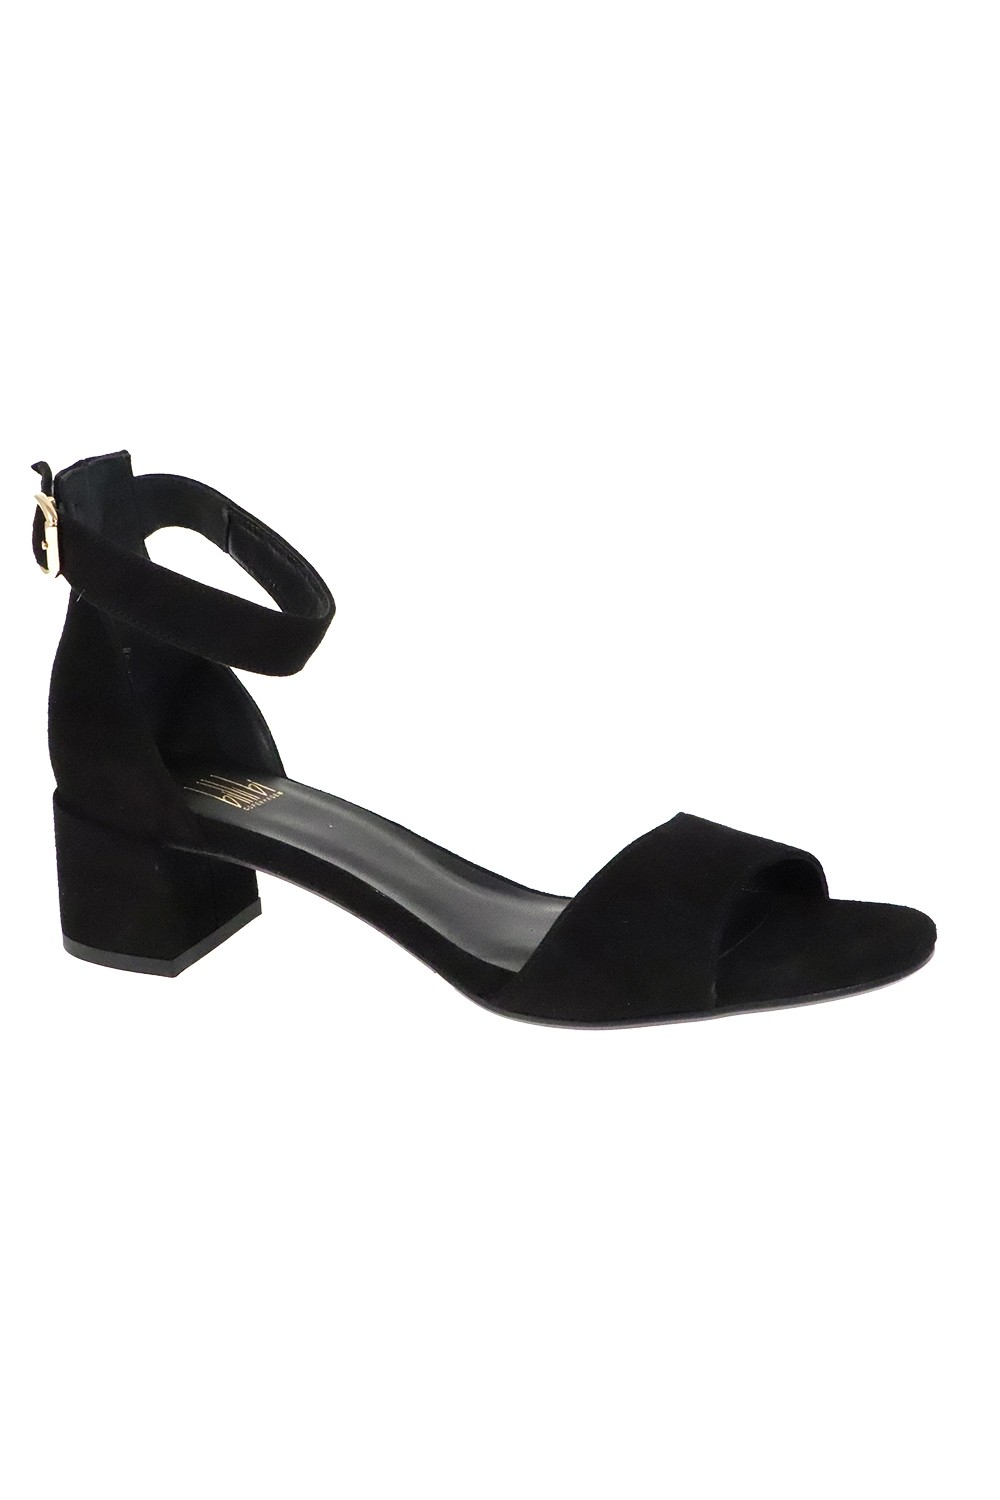 BilliBi6634050BlackSuede-02